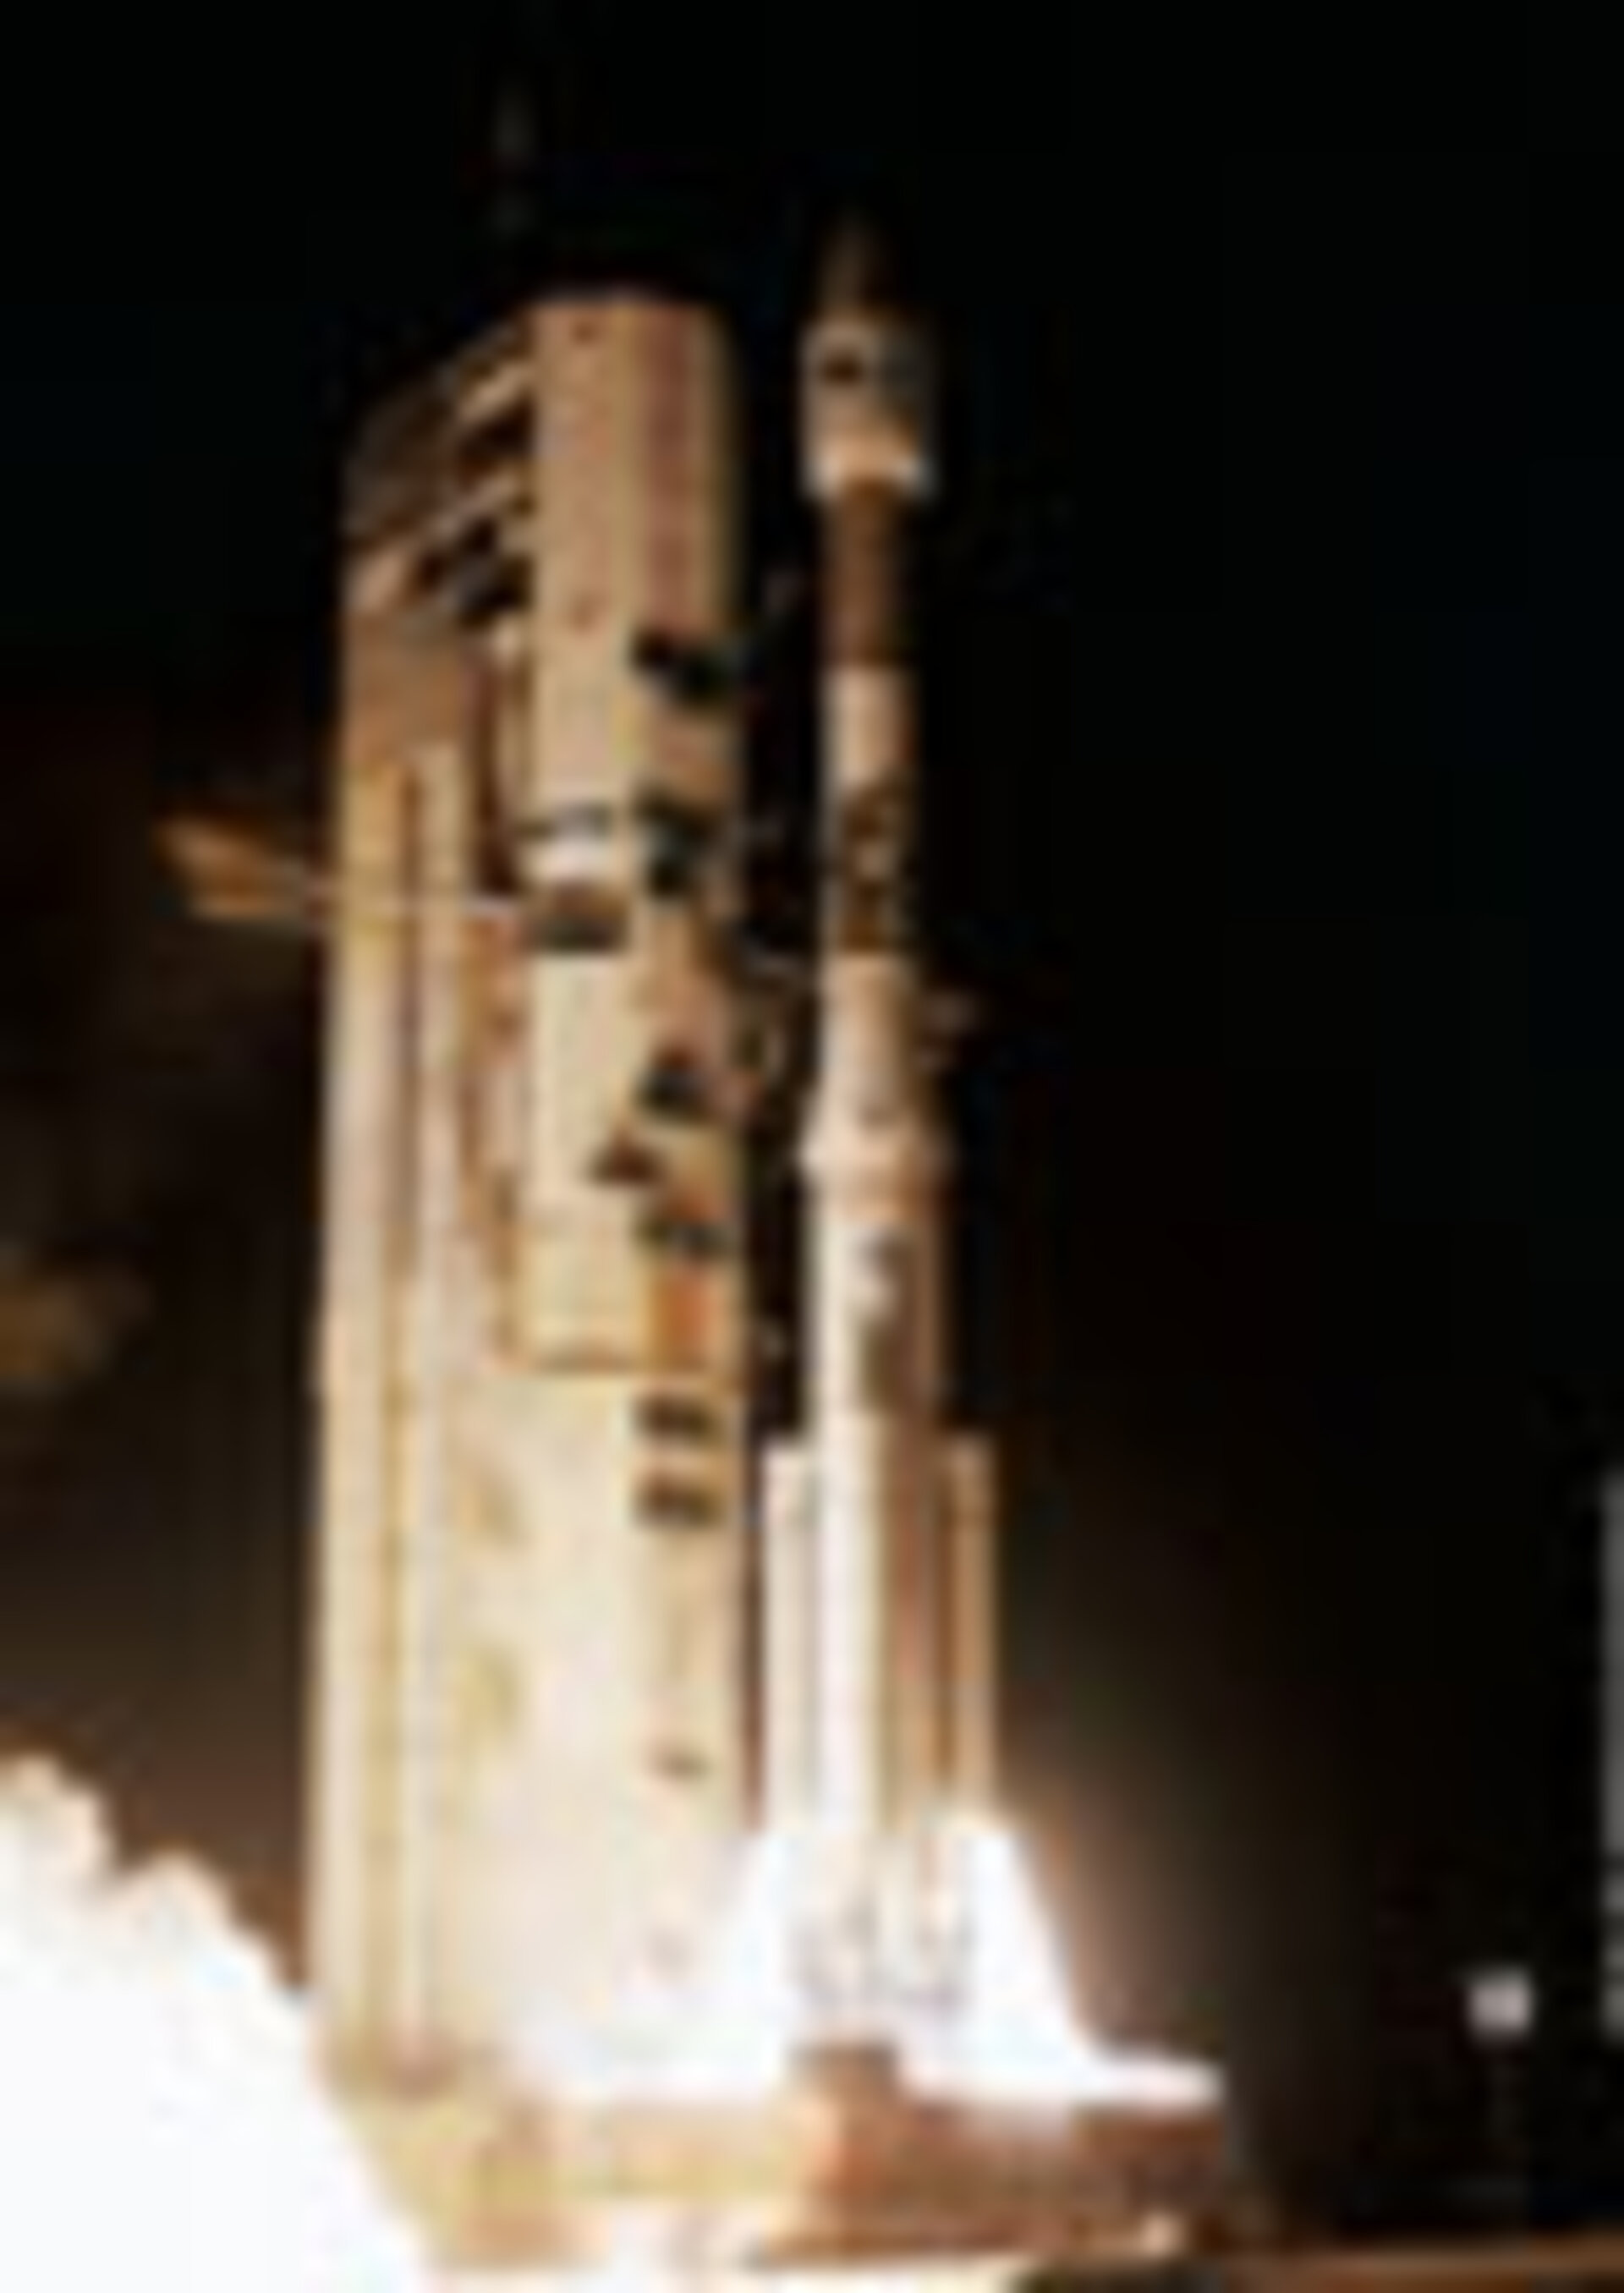 Ariane 4 - the launcher that took ERS-2 into orbit 21 Apr 1995